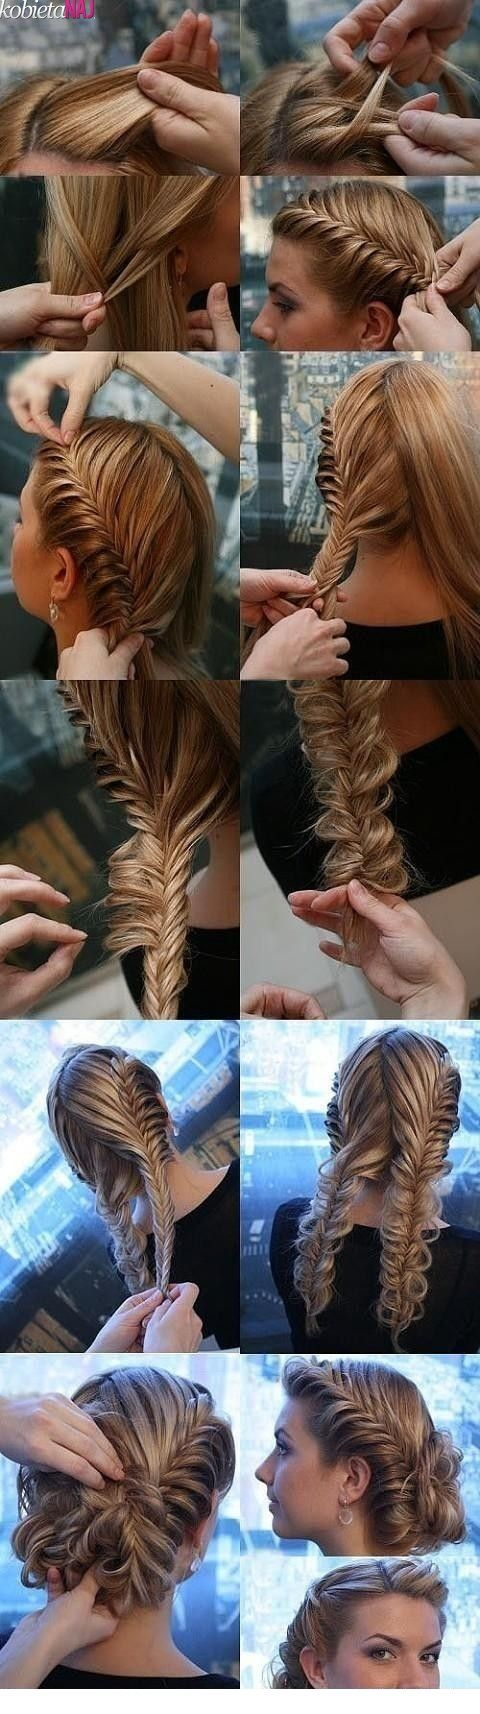 31 ways to braid your hair